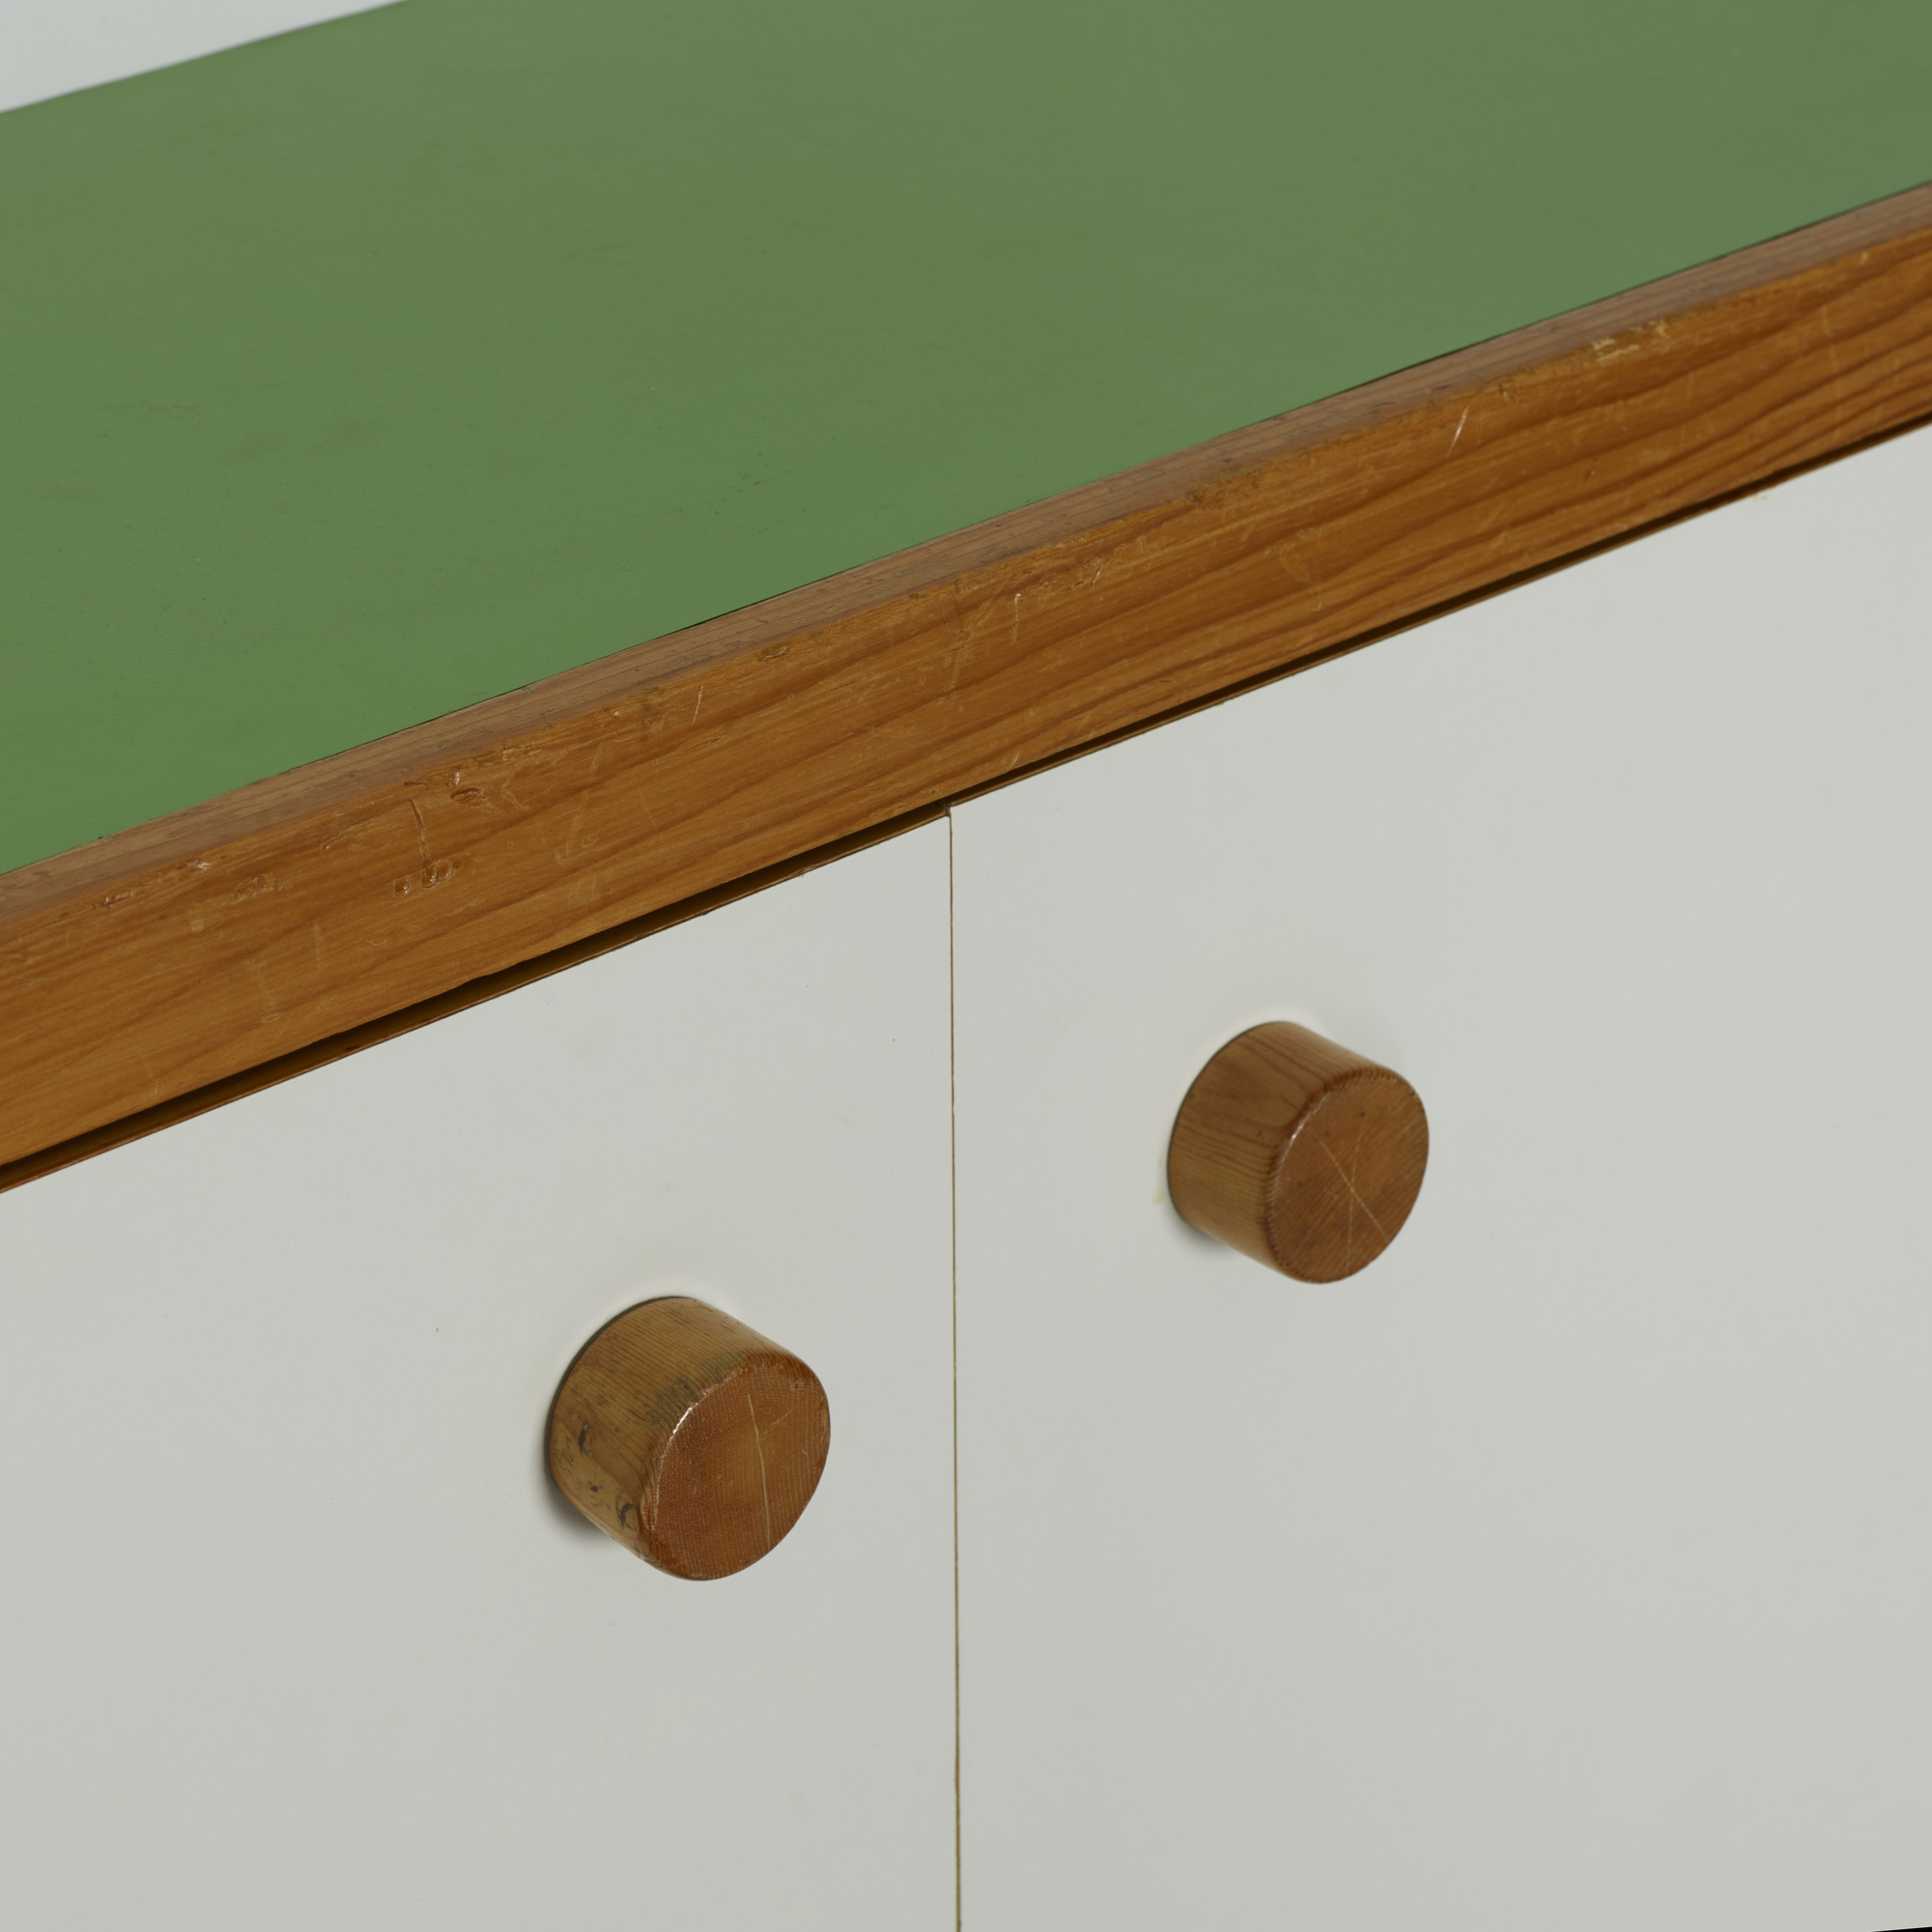 128: Charlotte Perriand / wall-mounted cabinet from Les Arcs (3 of 3)